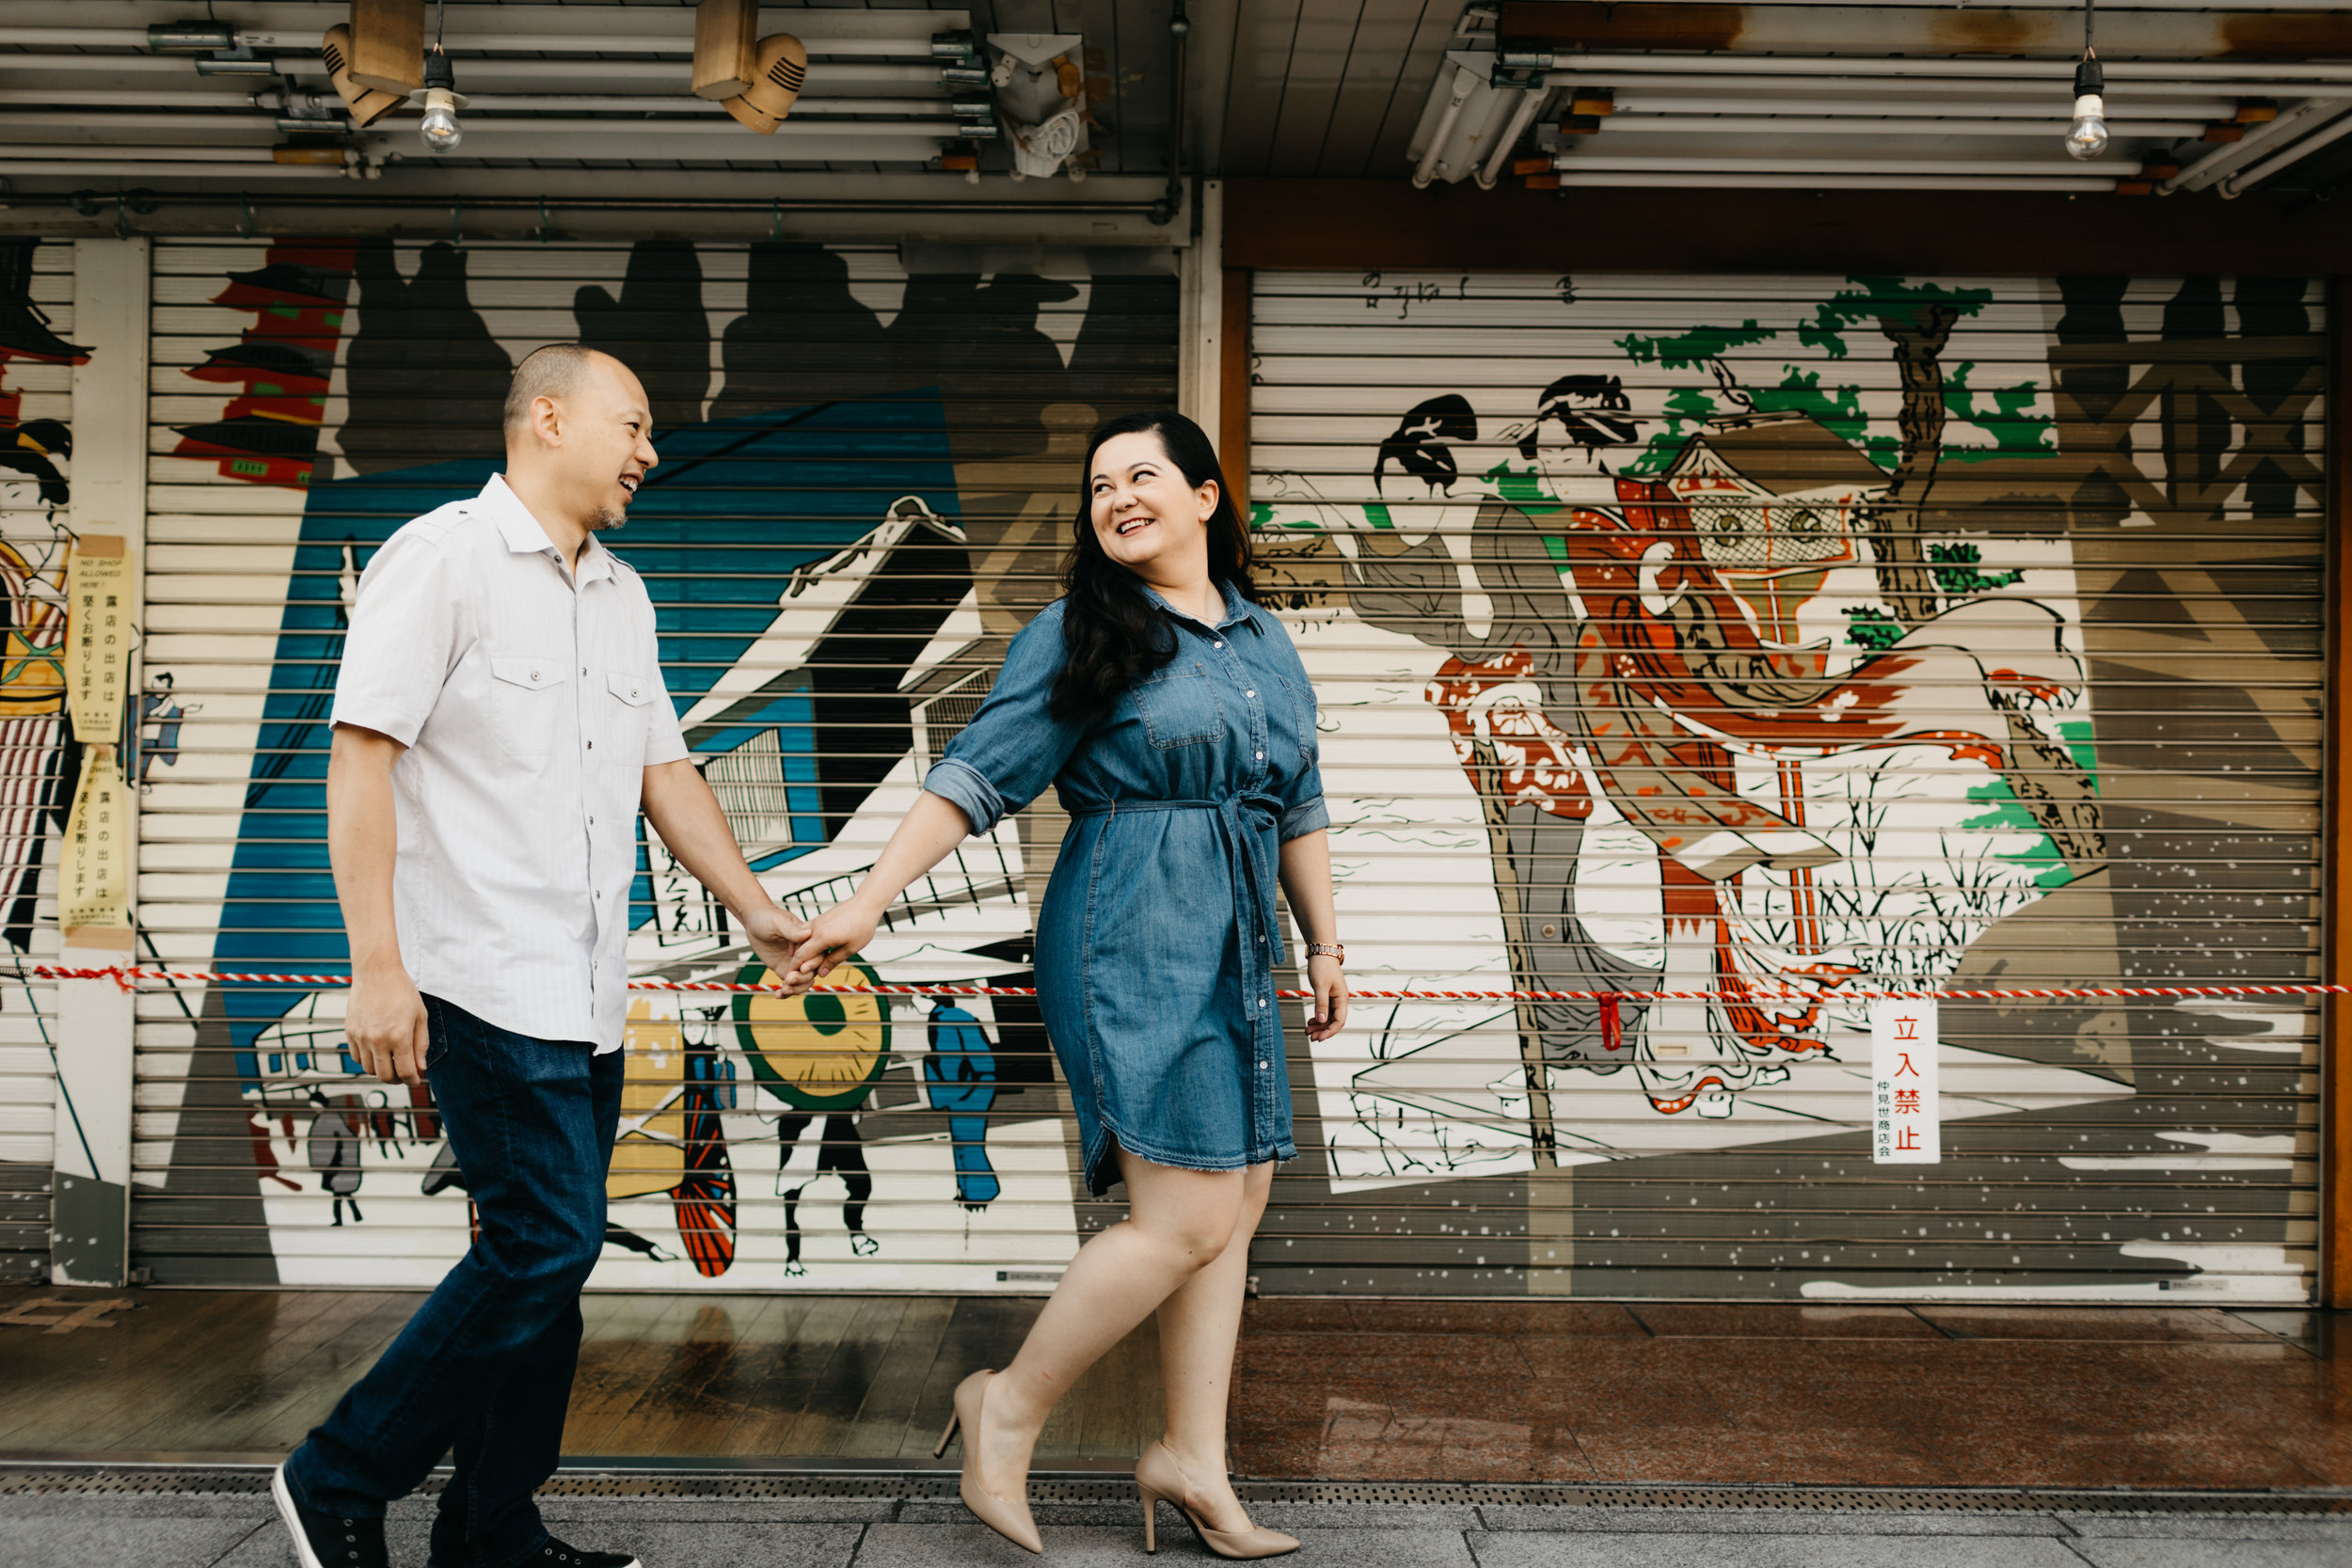 tokyo_sensoji_engagement_session_pictures_by_samantha_look-4.jpg